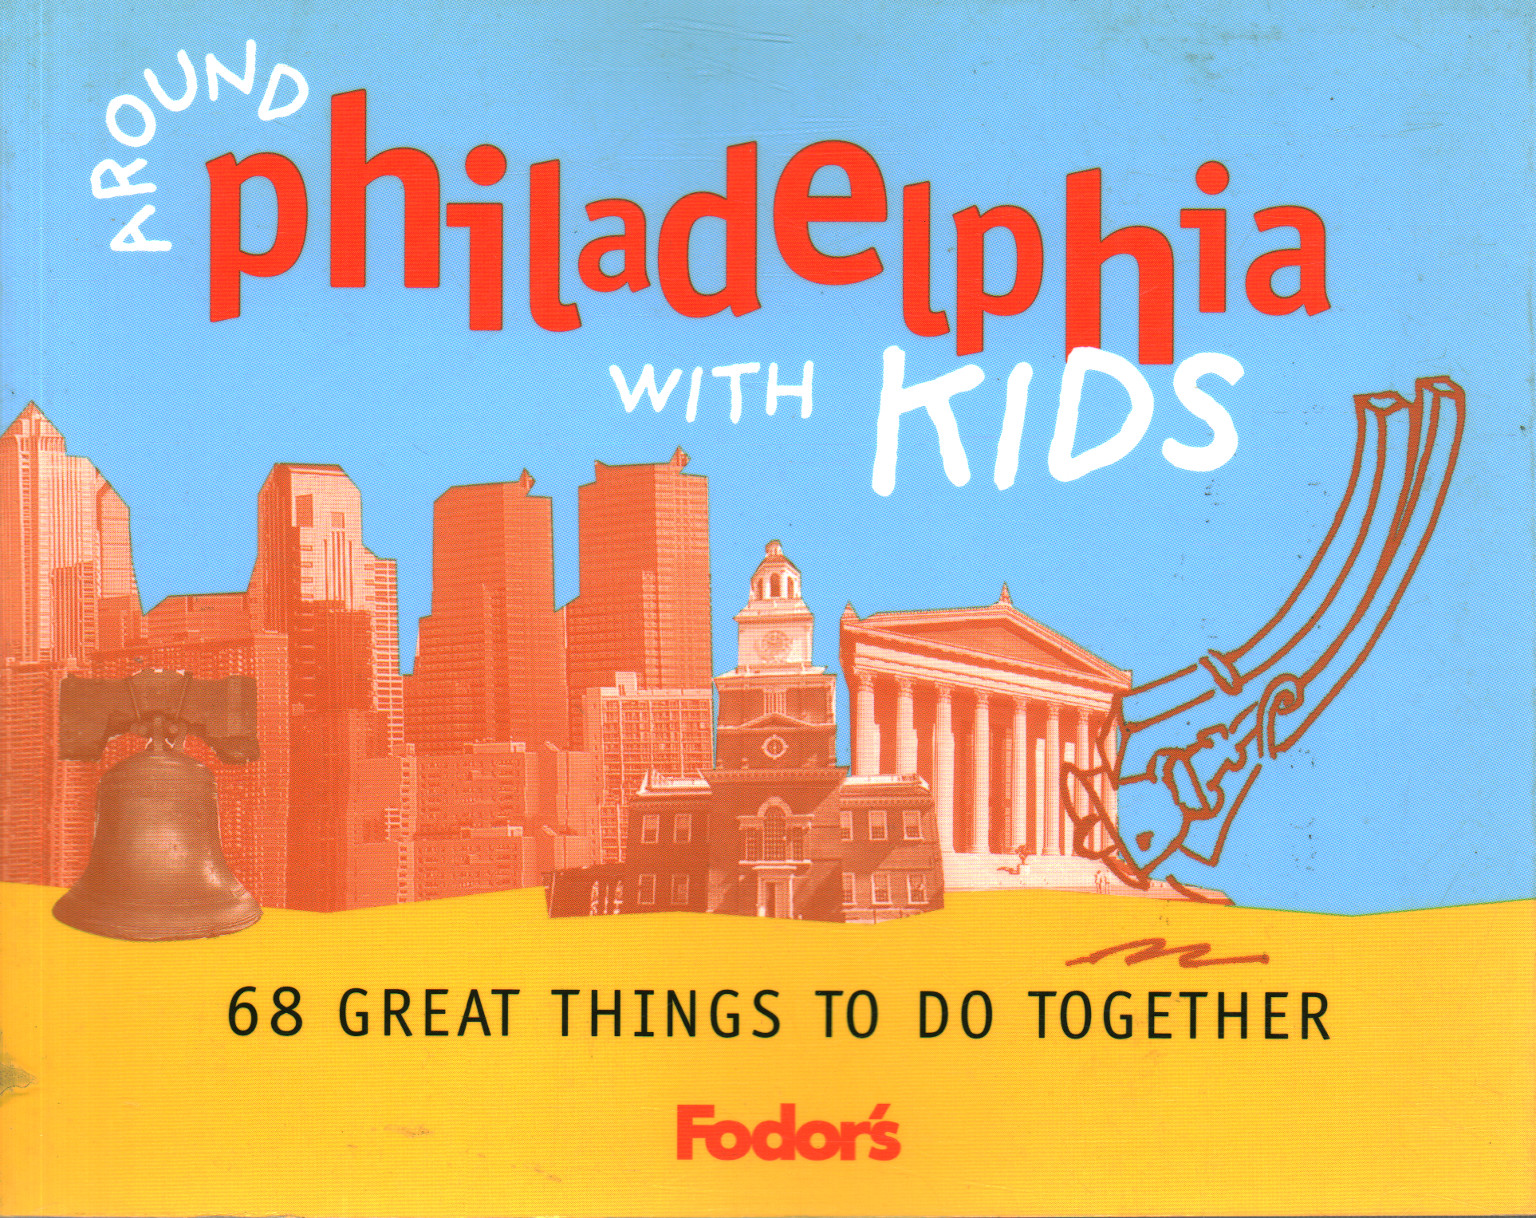 Around Phildelphia with kids, Andrea Lehman